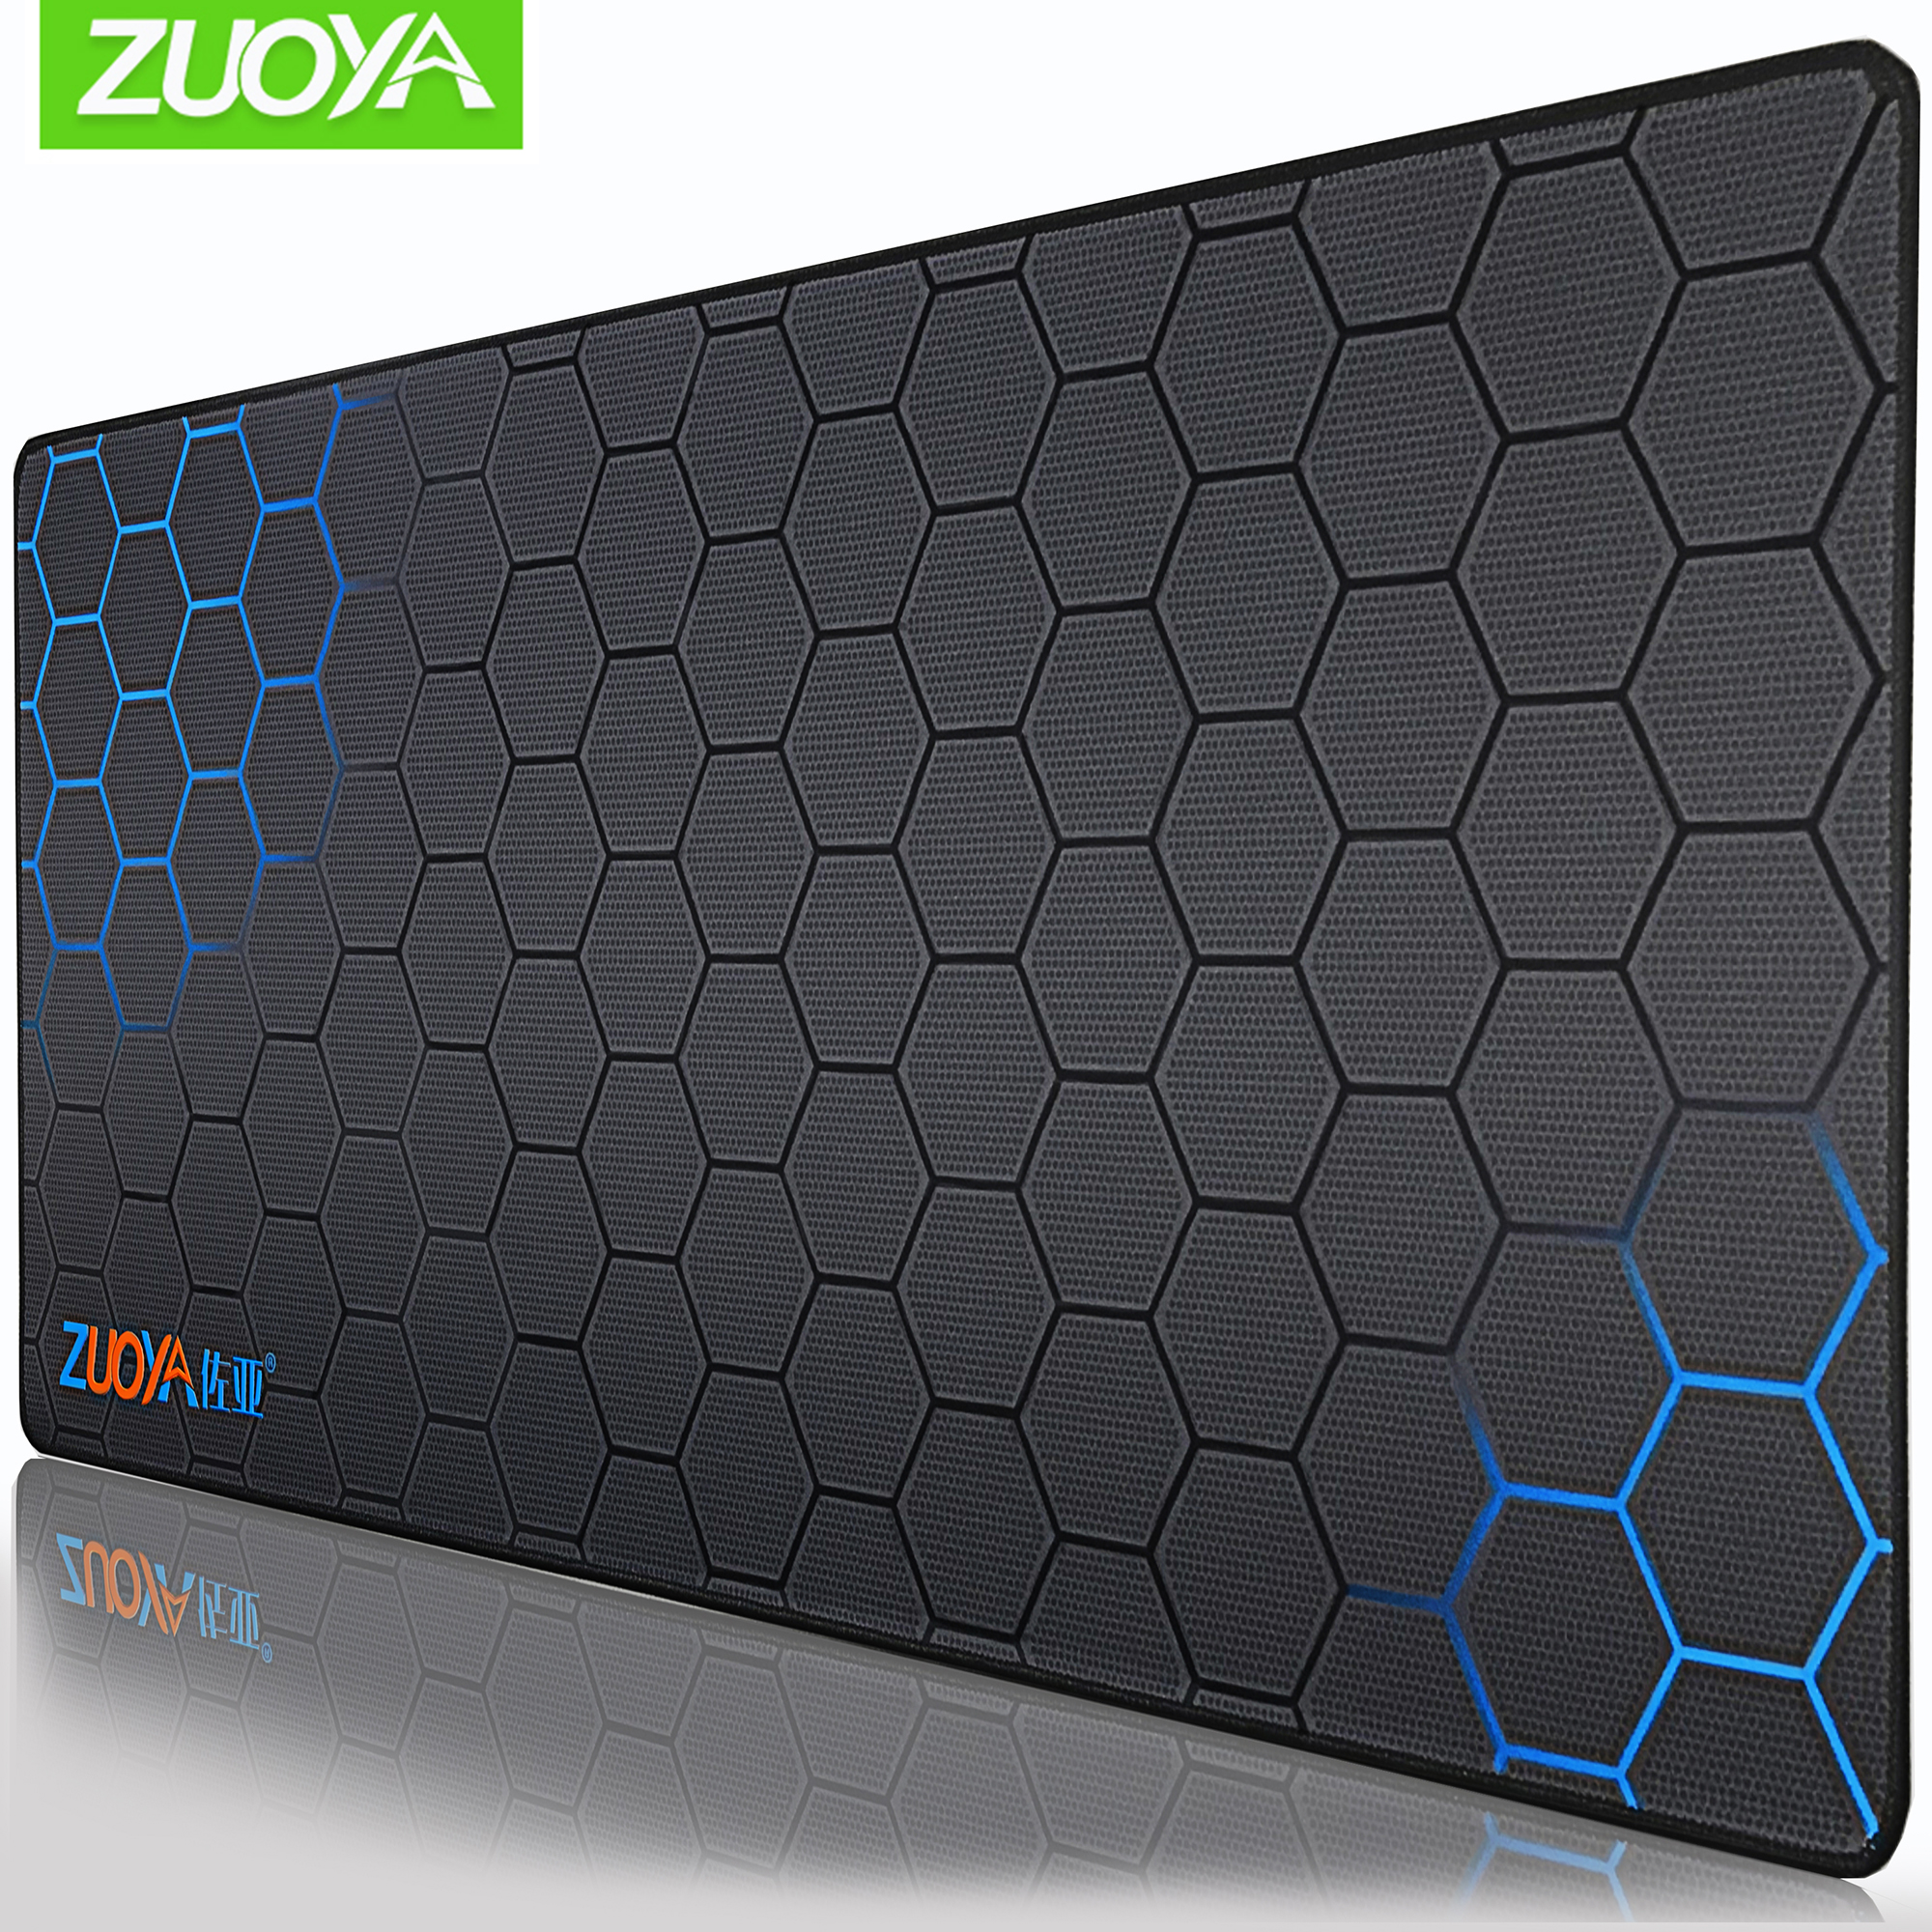 ZUOYA Gaming Mousepad Extra <font><b>Large</b></font> <font><b>Mouse</b></font> <font><b>Pad</b></font> Old World Map Anti-slip Natural Rubber with Locking Edge <font><b>XXL</b></font> Gaming <font><b>Mouse</b></font> Mat image